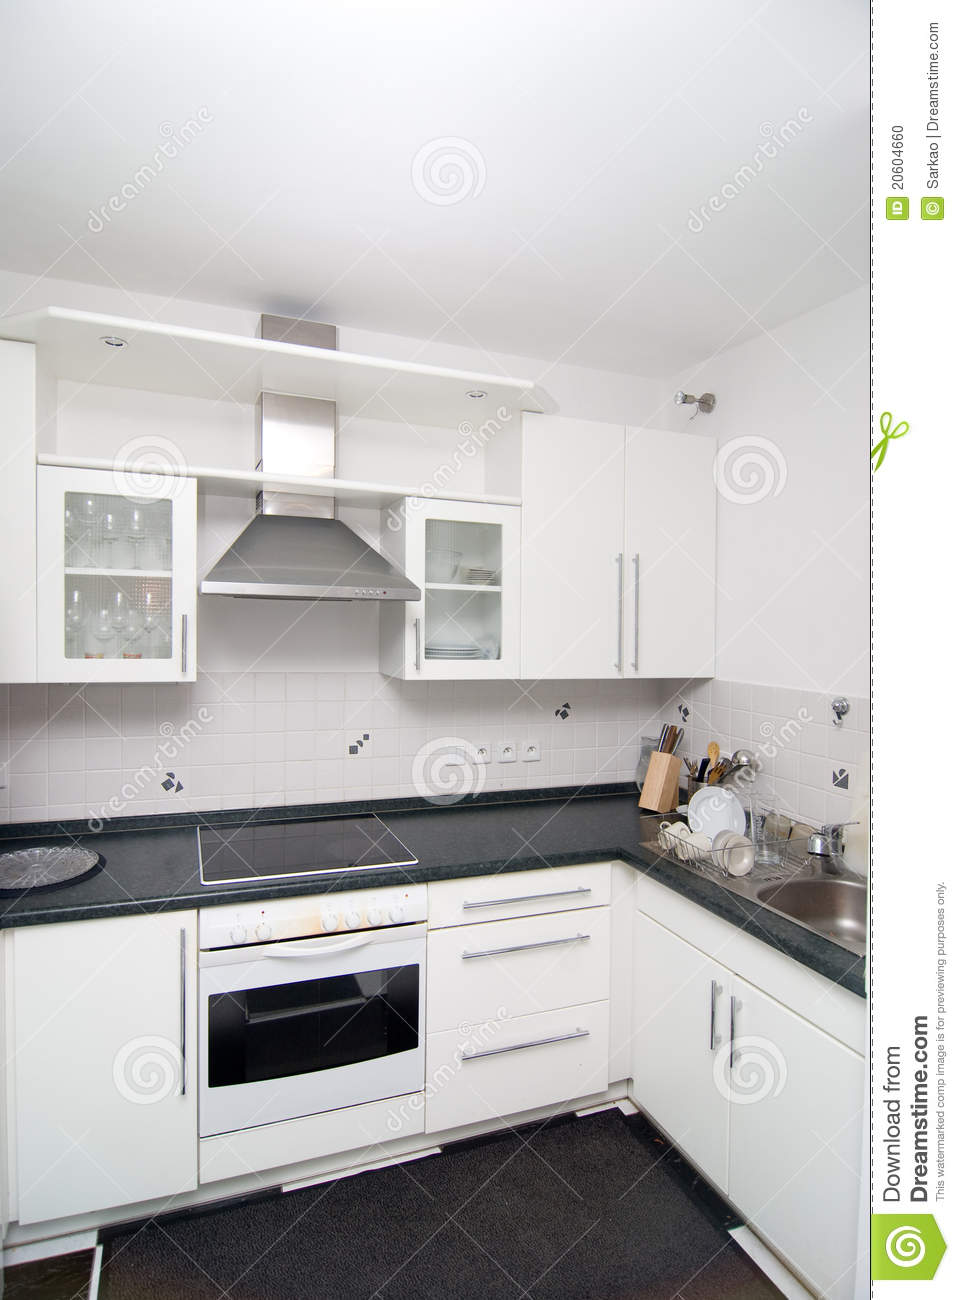 Cuisine Home Design : Cuisine Blanche Photo stock  Image 20604660